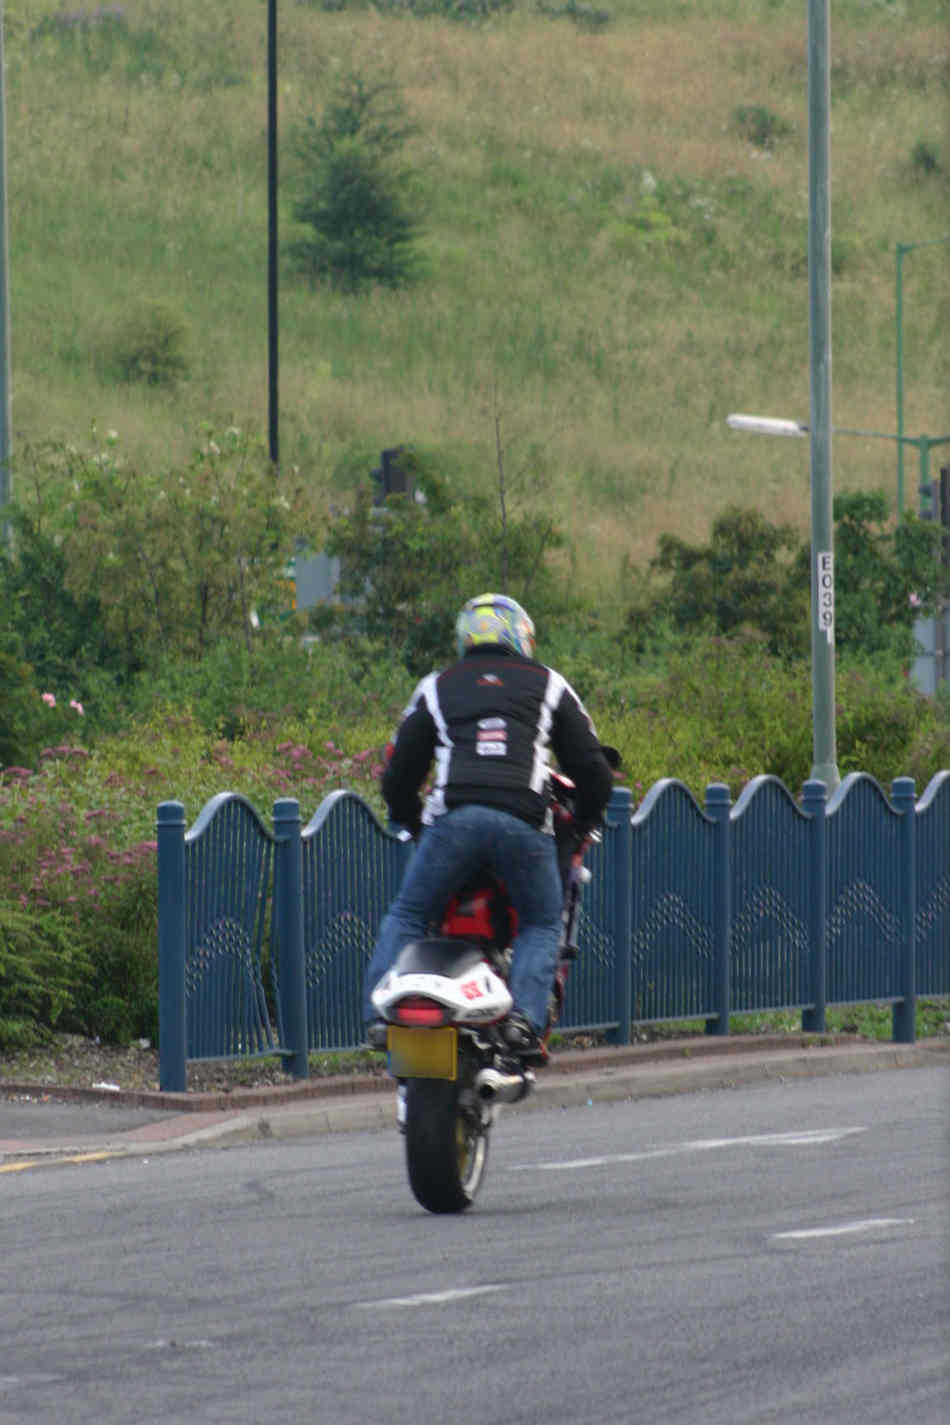 chap in jeans and a bomber jacket pulling a wheelie on a race replica sports bike on the public road.